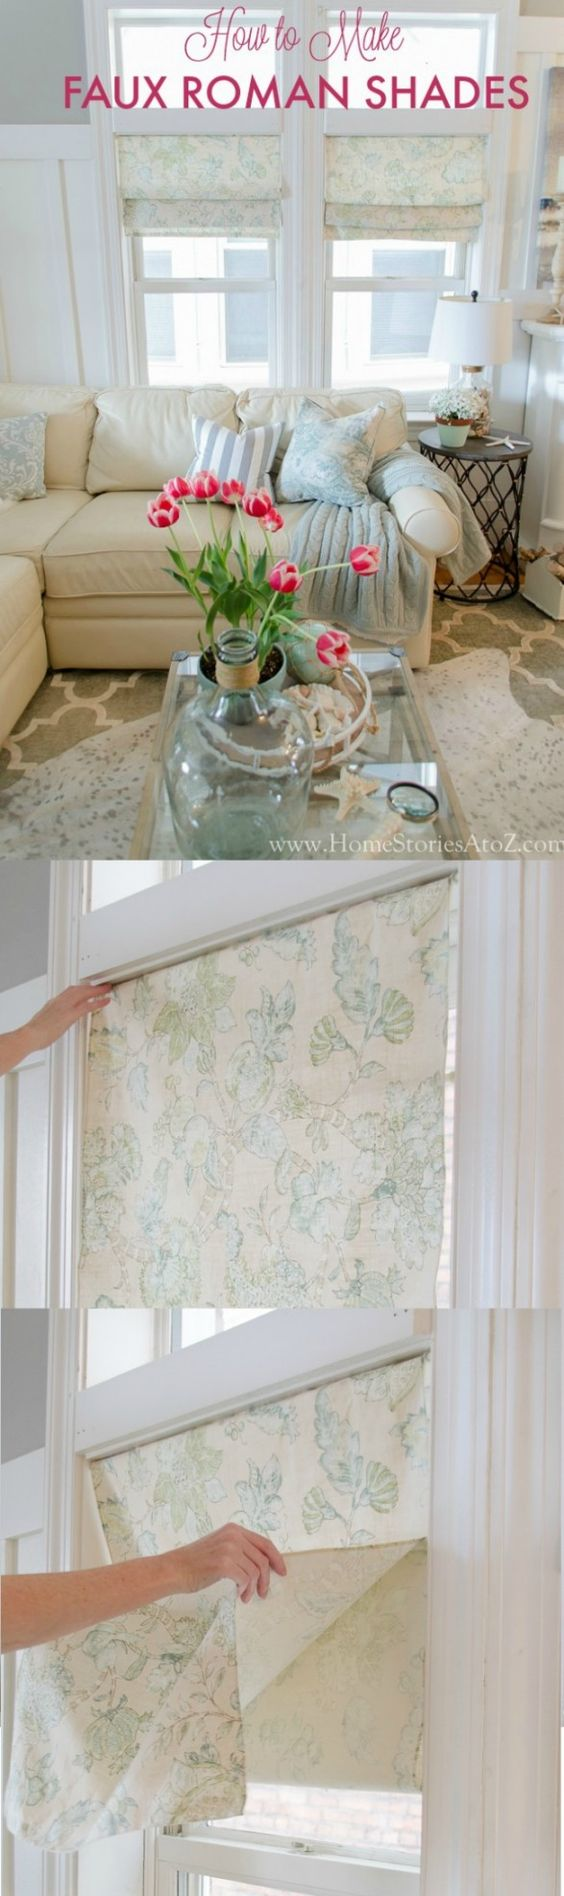 Faux Roman Shade Hack